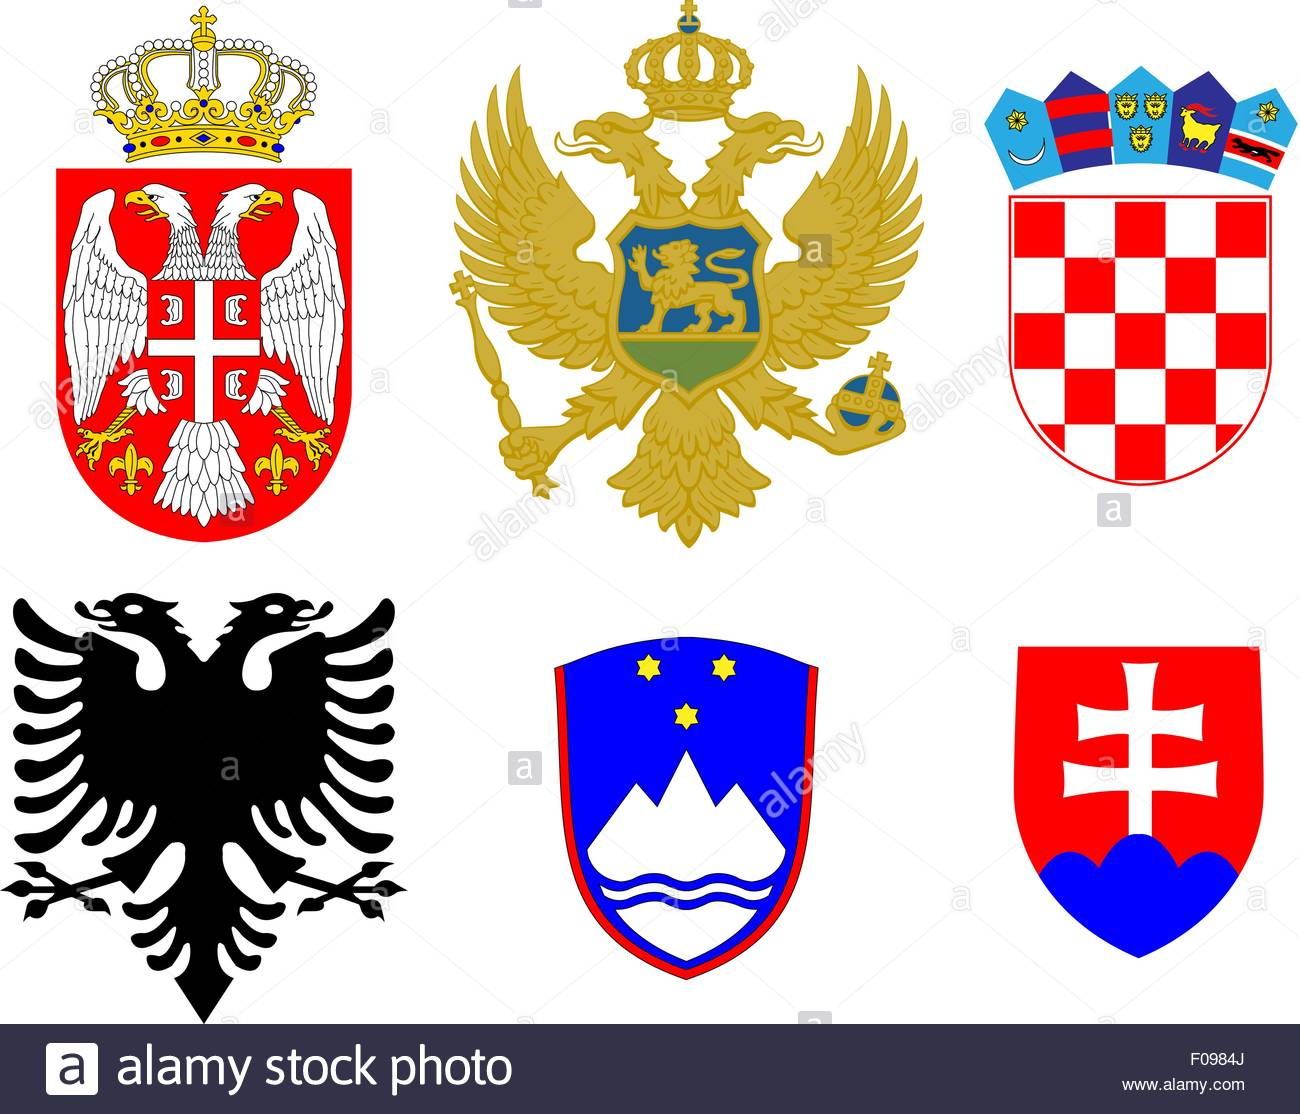 Coats of Arms of European Flags 2 - Stock Image